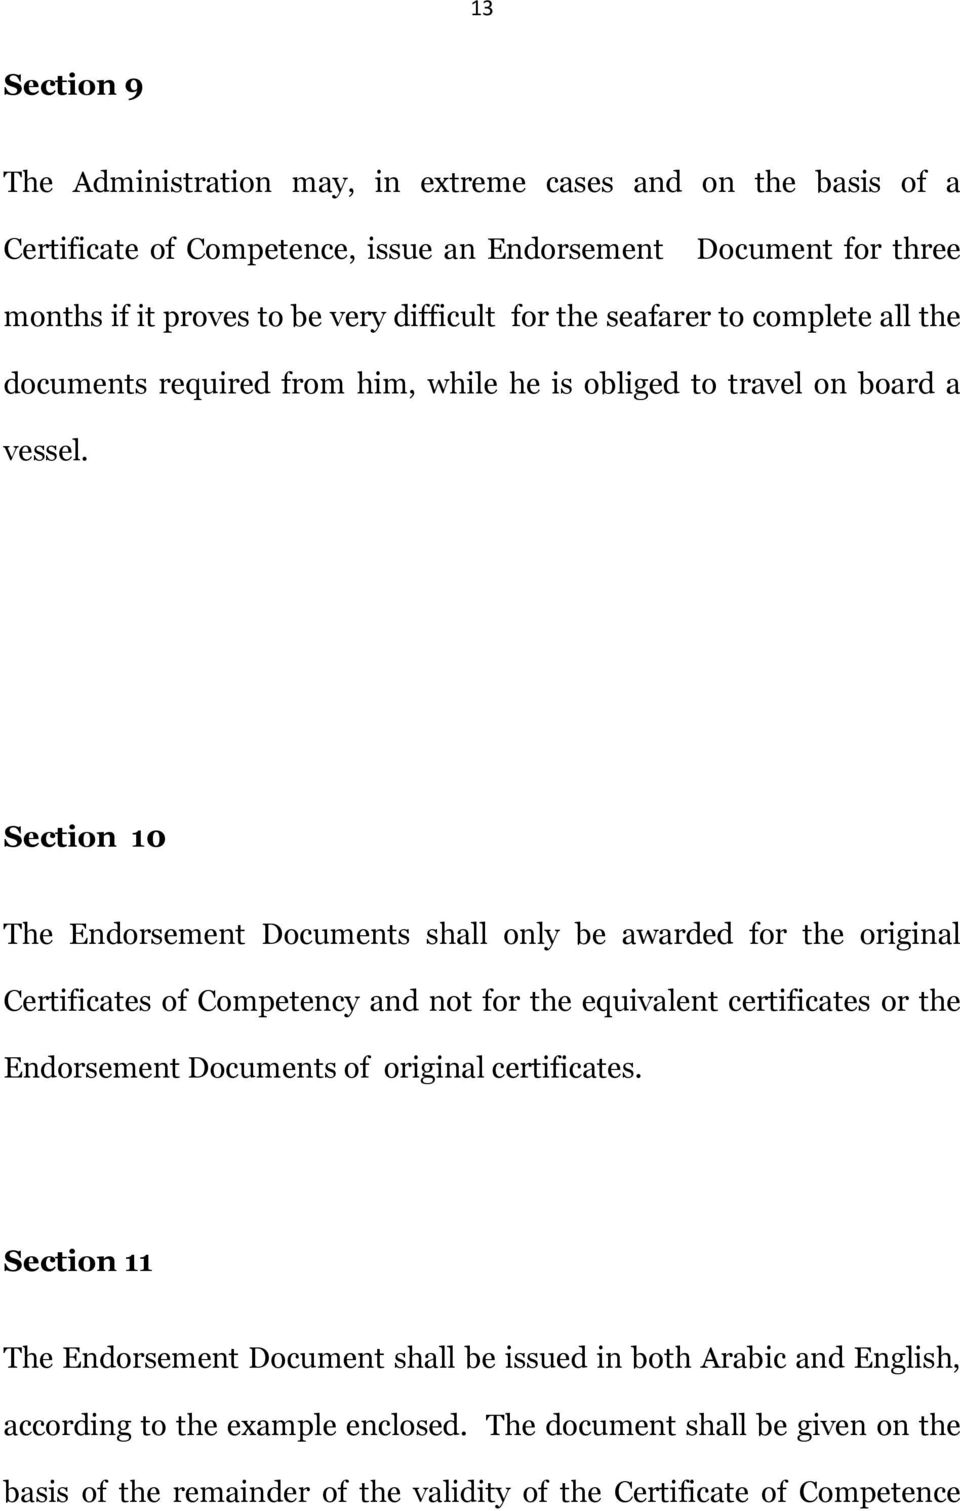 Section 10 The Endorsement Documents shall only be awarded for the original Certificates of Competency and not for the equivalent certificates or the Endorsement Documents of